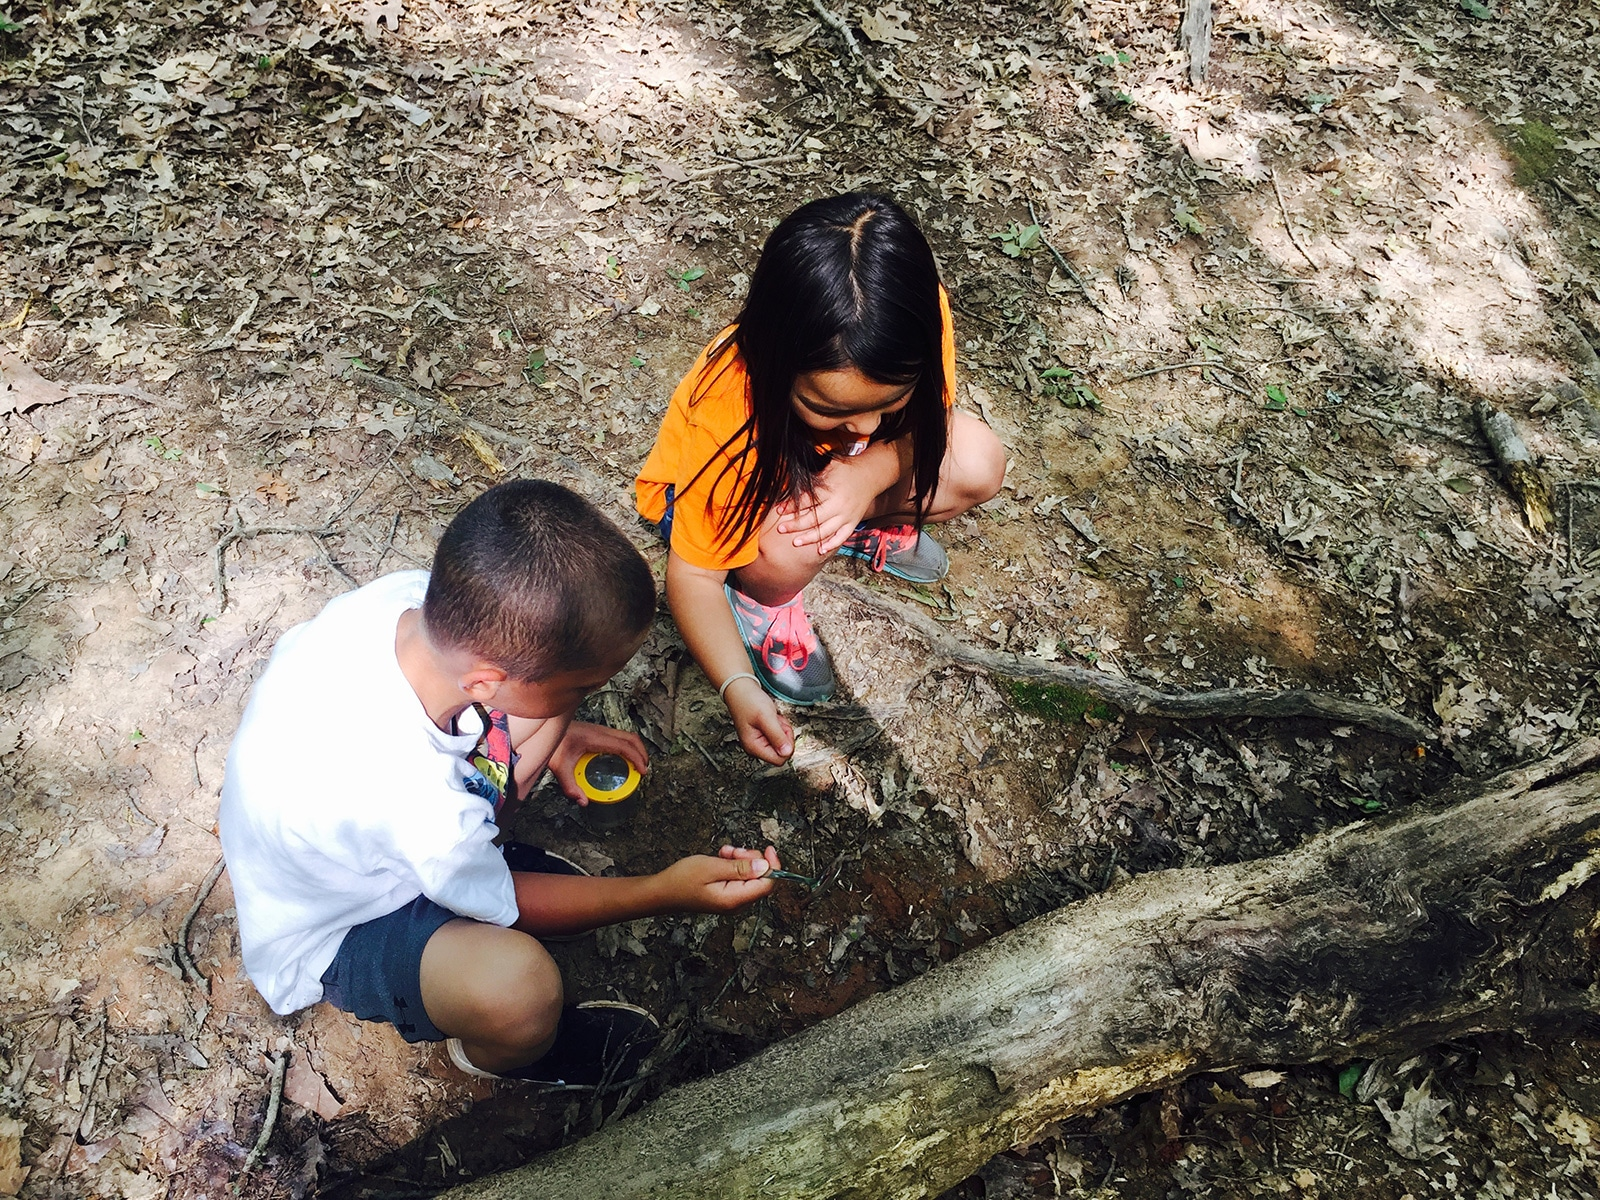 Kids exploring the outdoors